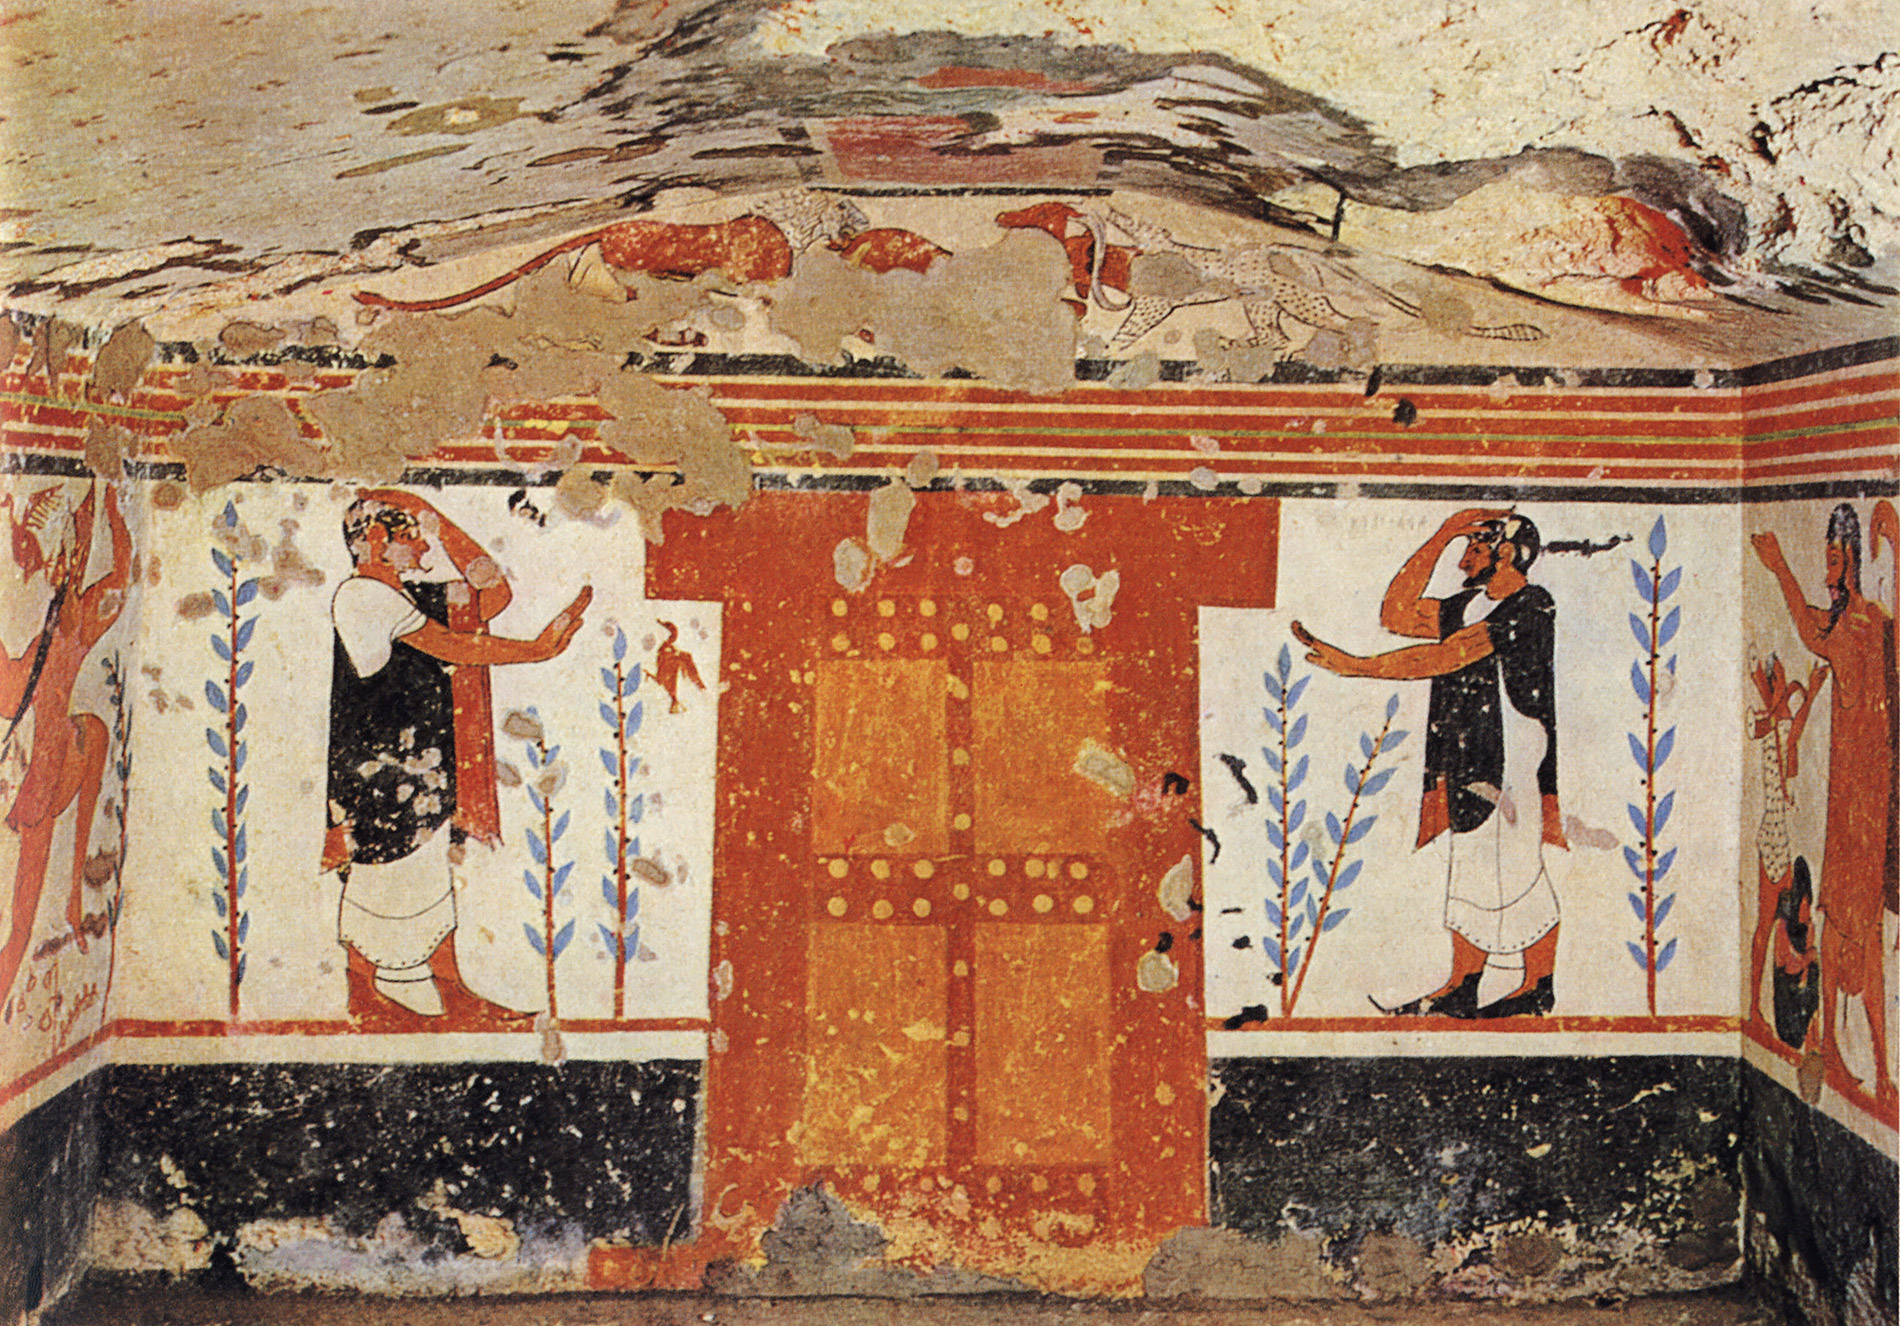 Central composition of the Augurs tomb in Tarquinia. 6th century BCE. Tarquinia, Tomb of the Augurs